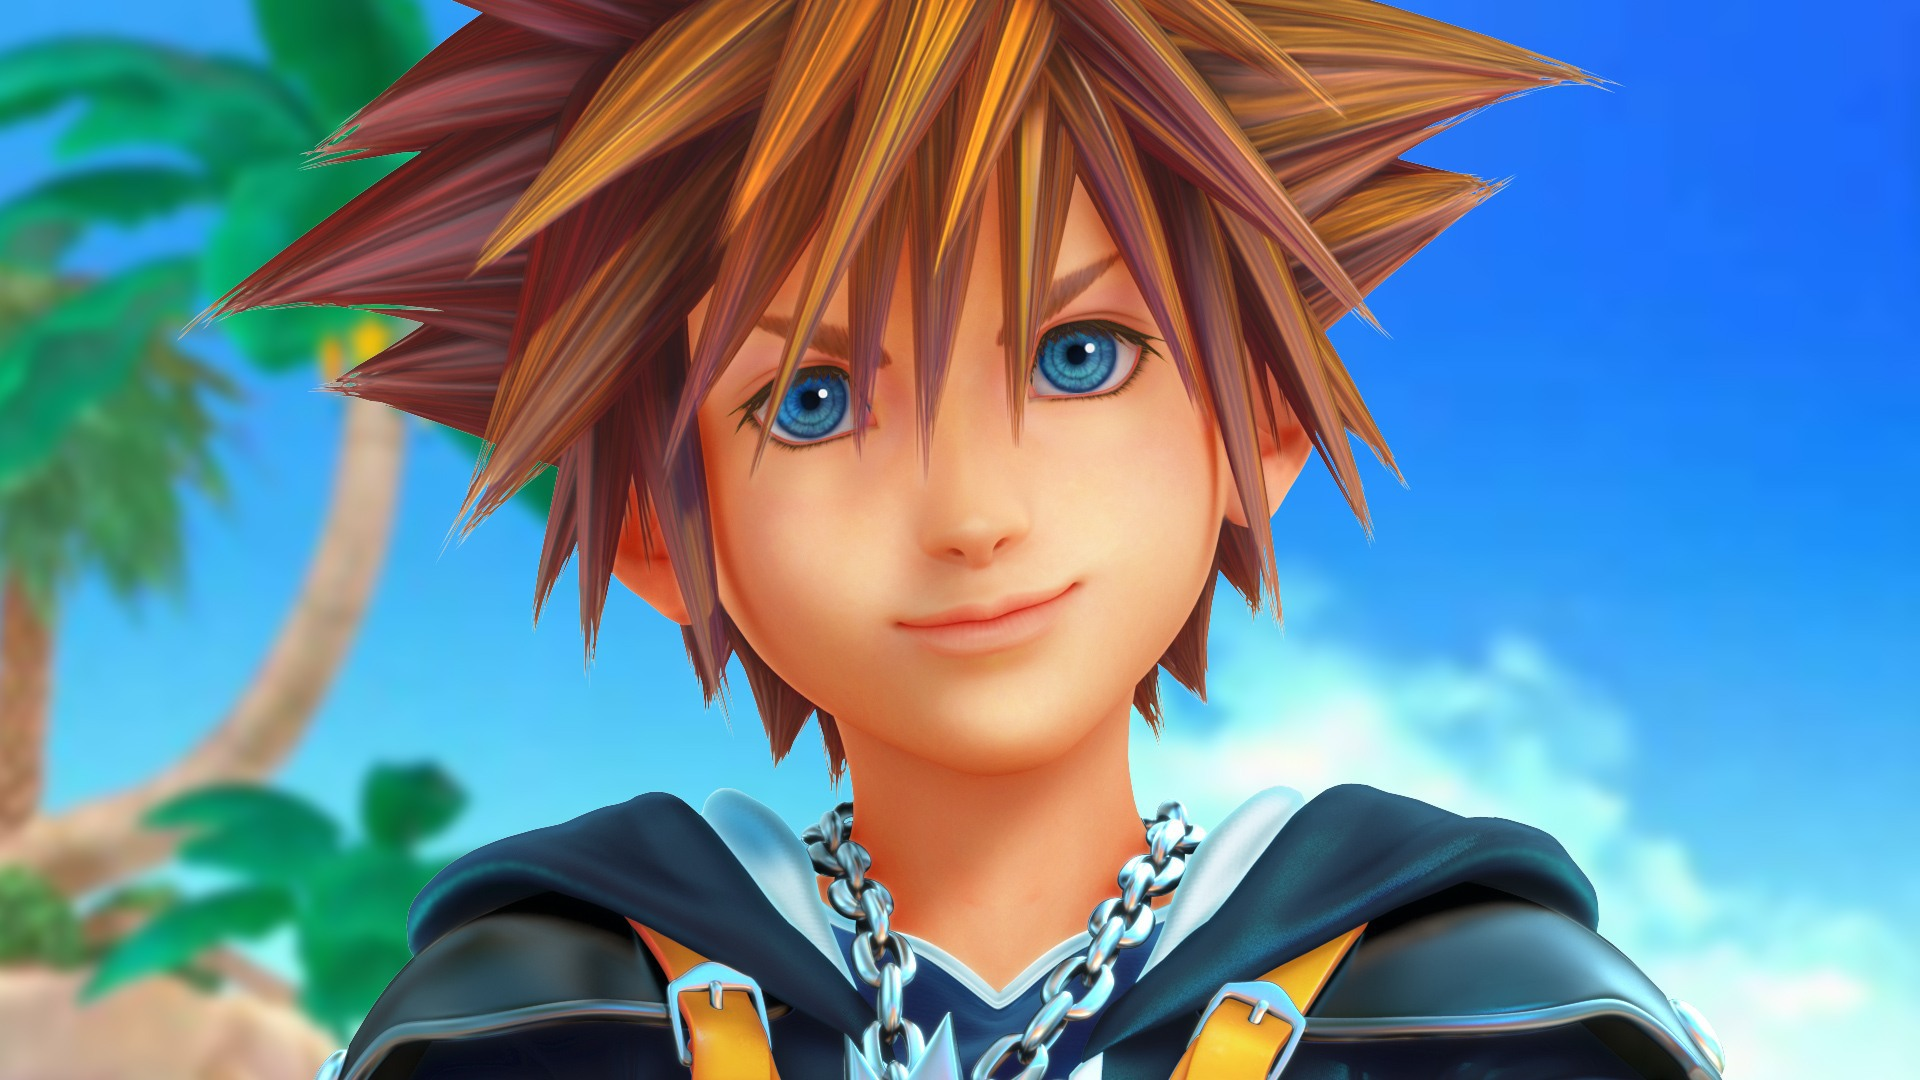 Kingdom Hearts 3 Images